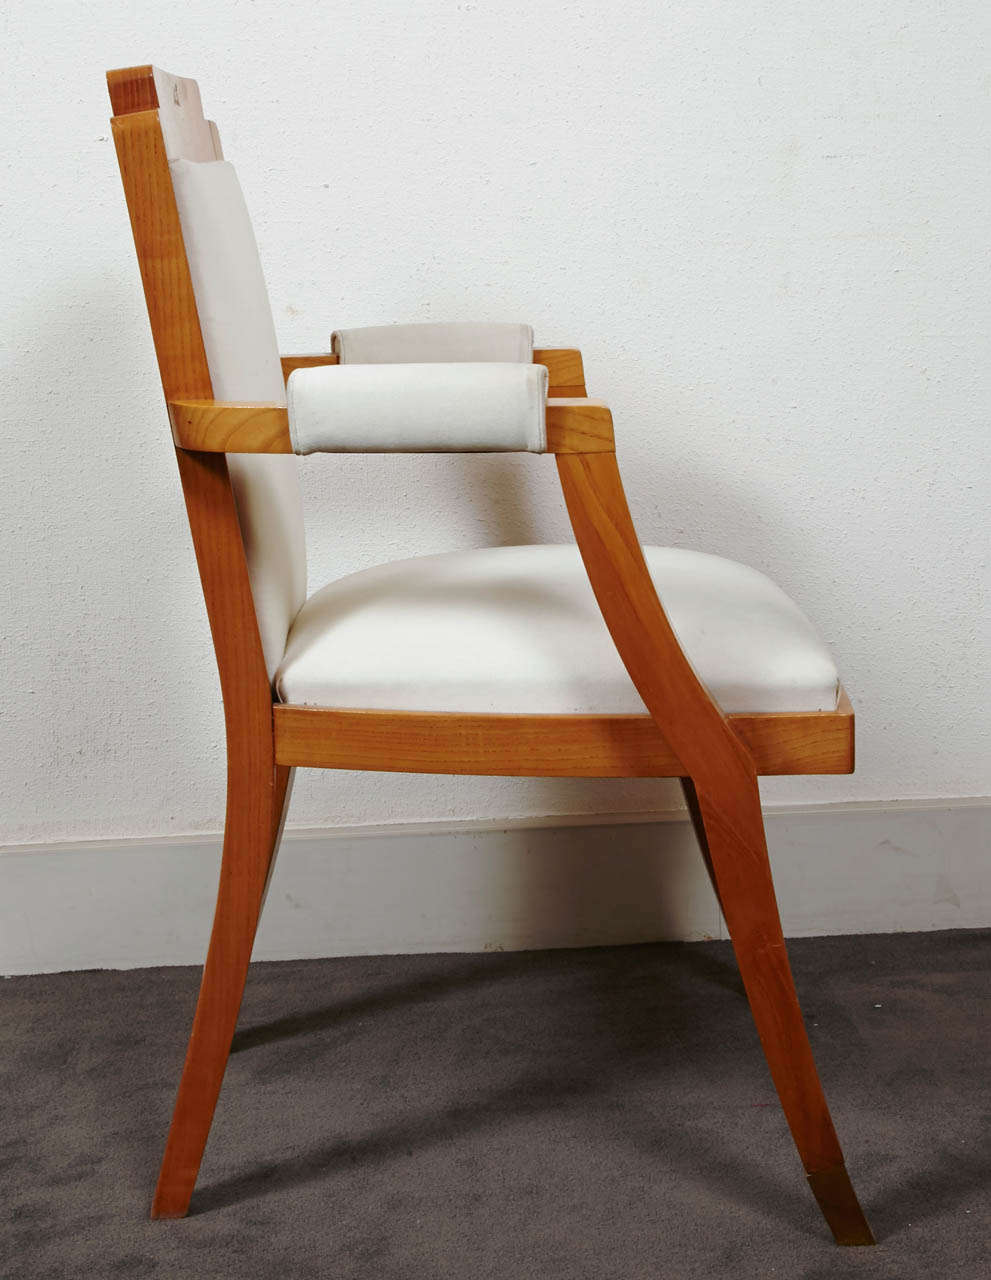 French Pair of Beech Tree Armchairs by G. Darbois-Gaudin, 1949 For Sale